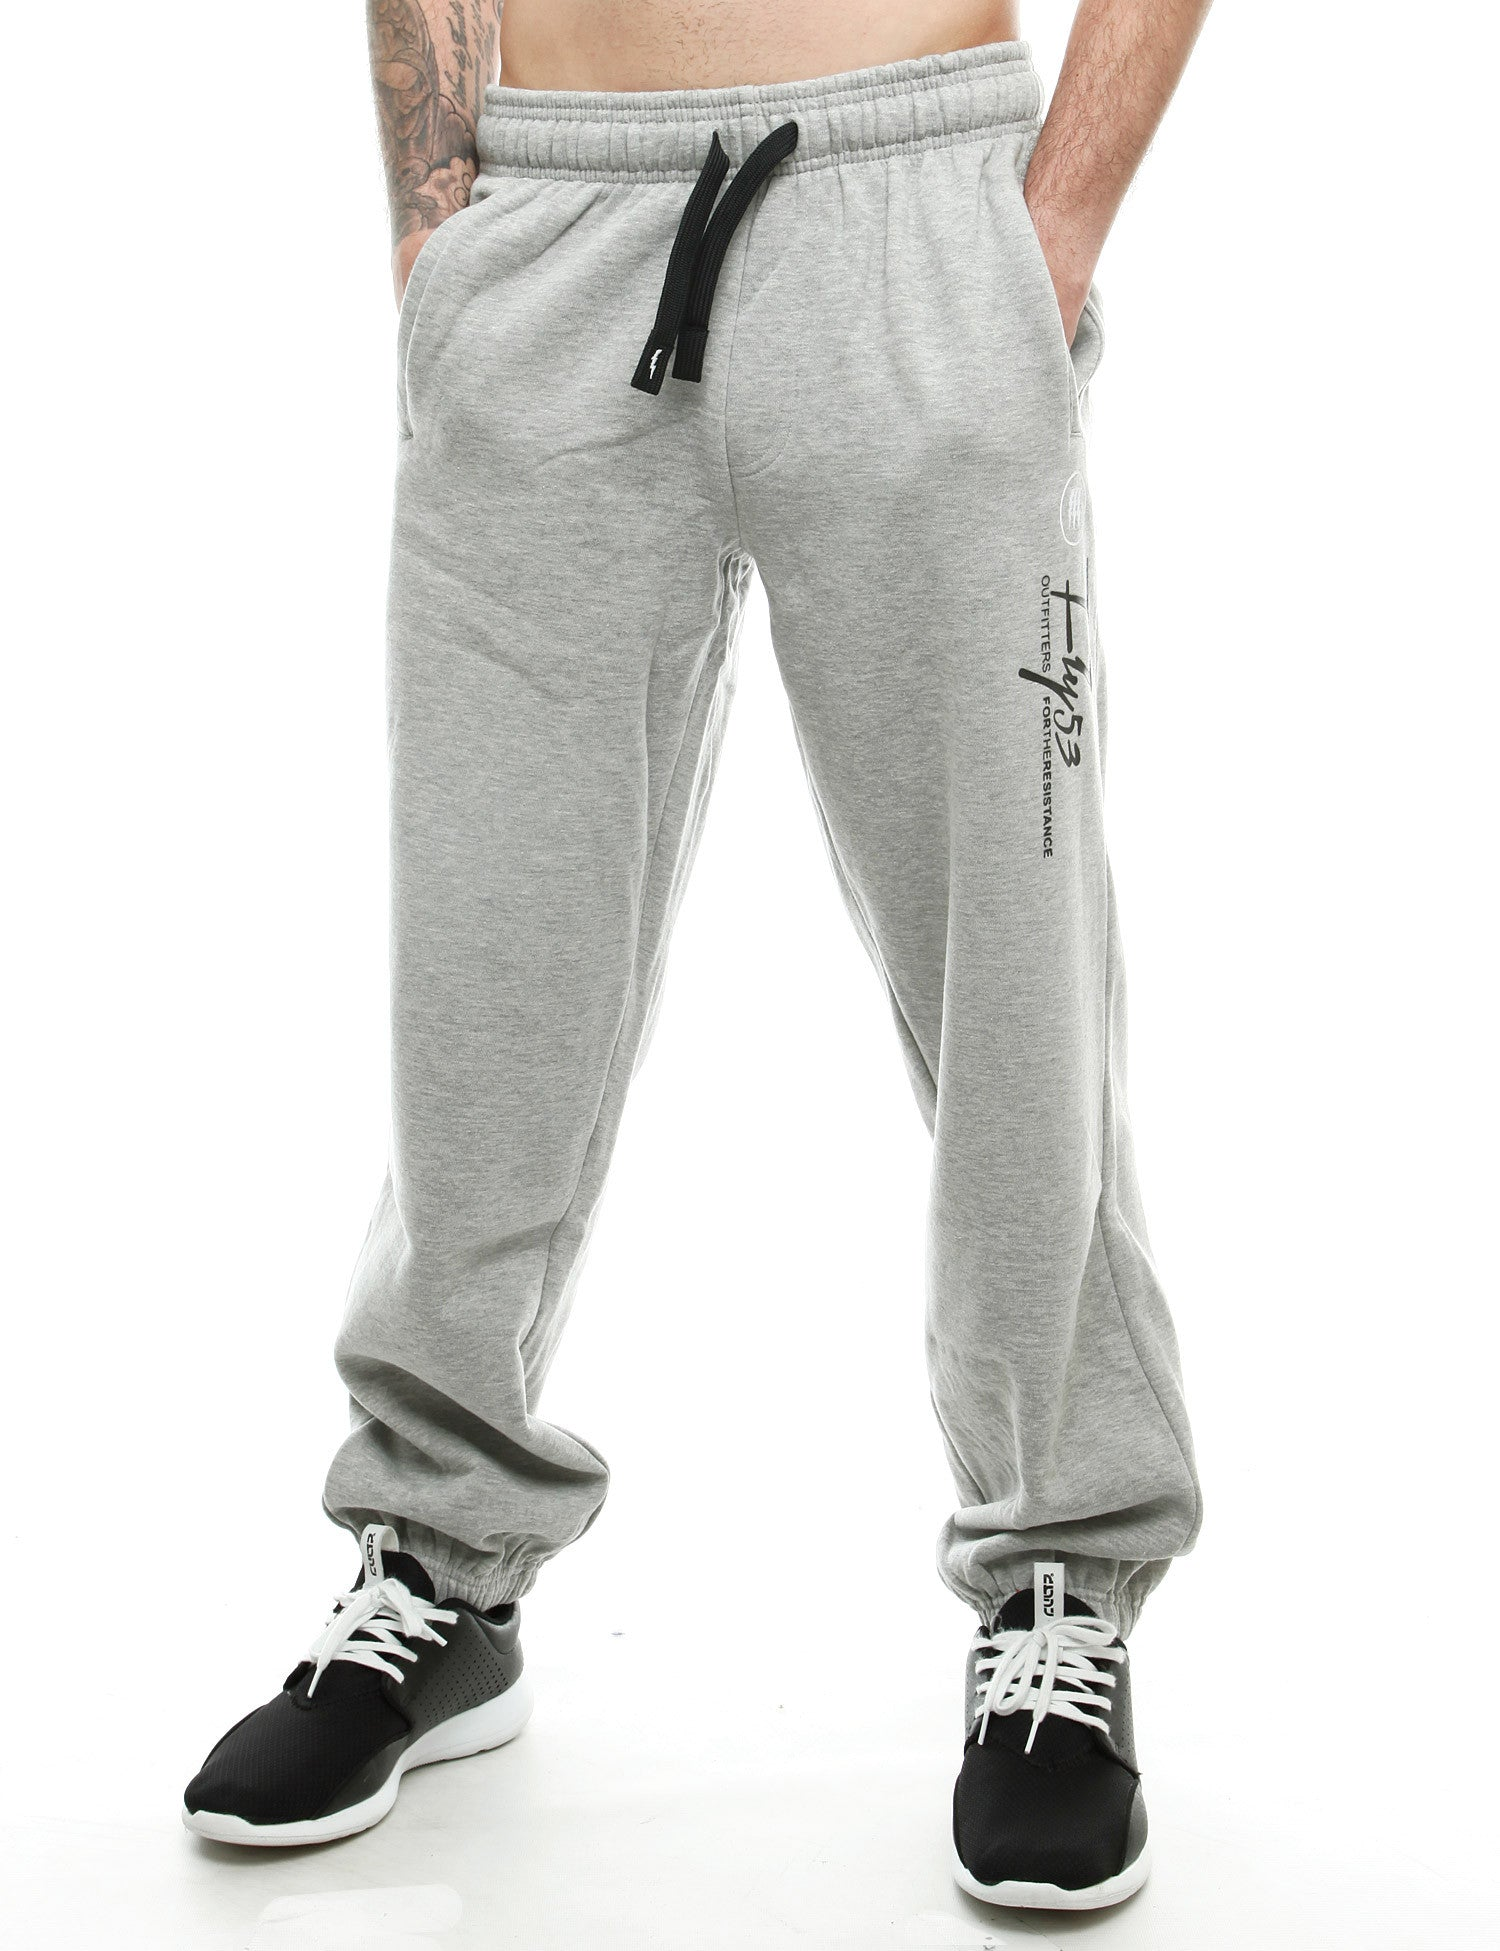 Fly 53 Greenwich Sweatpant FSK00318 Grey